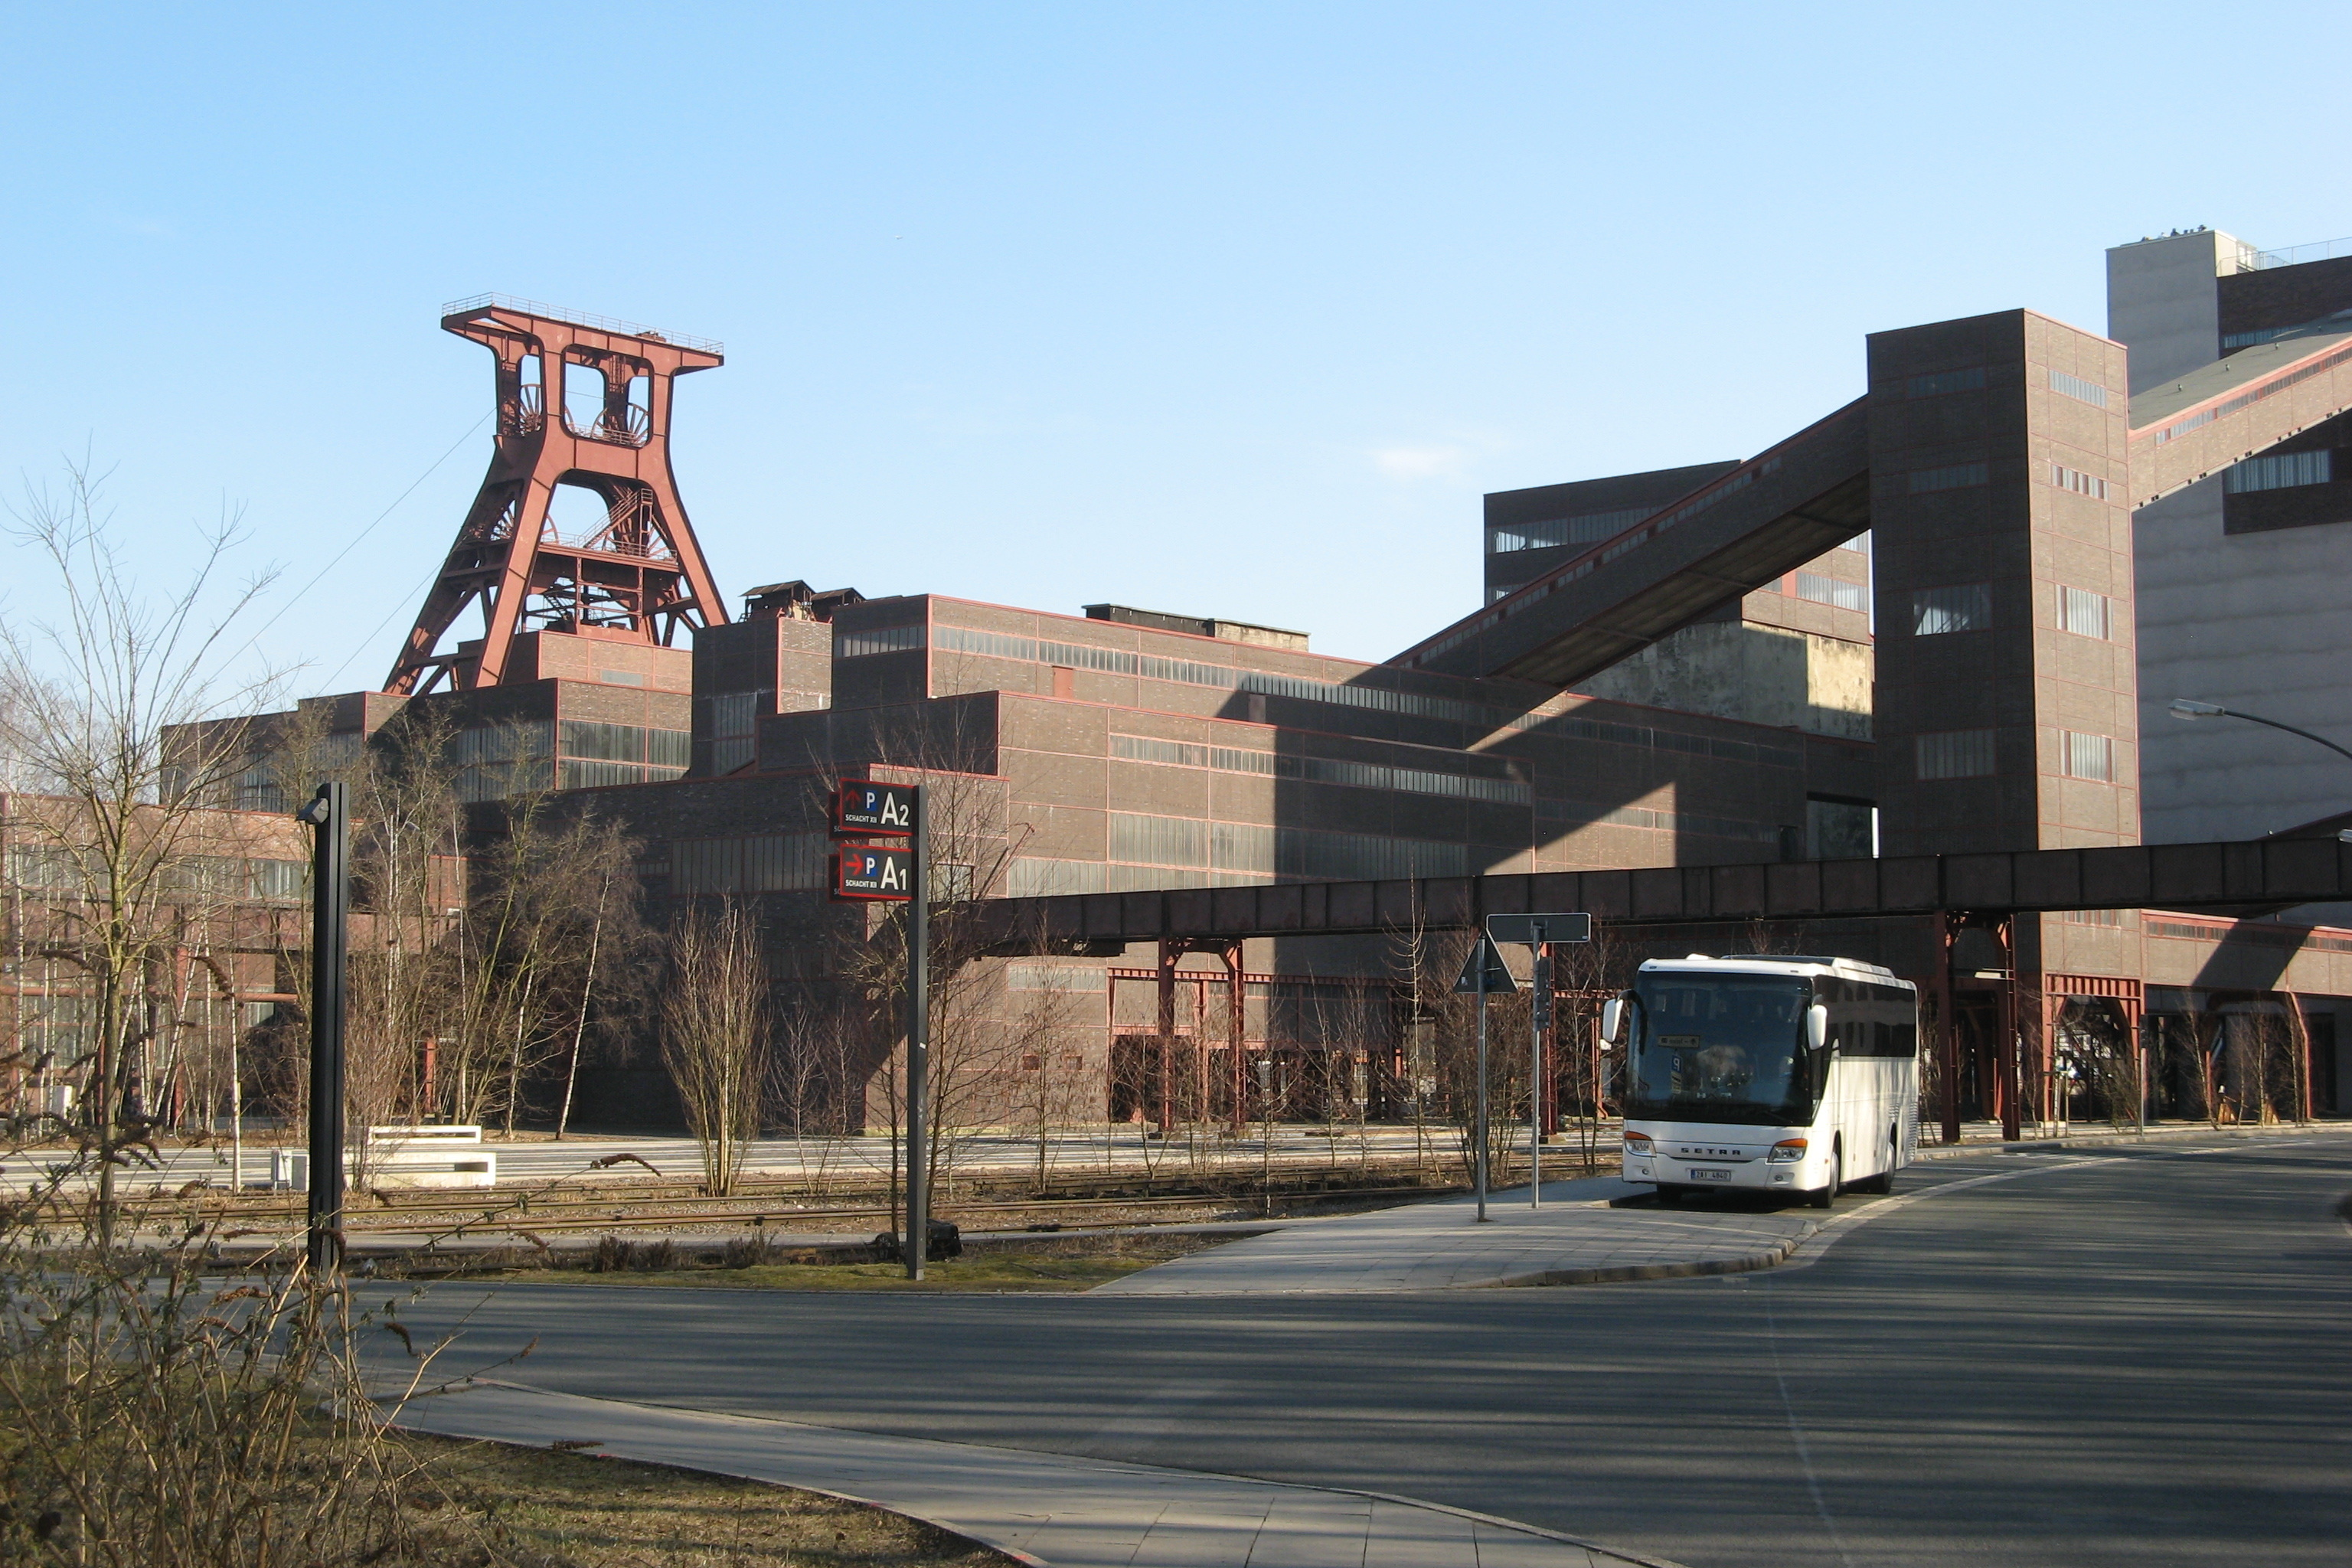 The UNESCO World Heritage site Zeche Zollverein in Essen